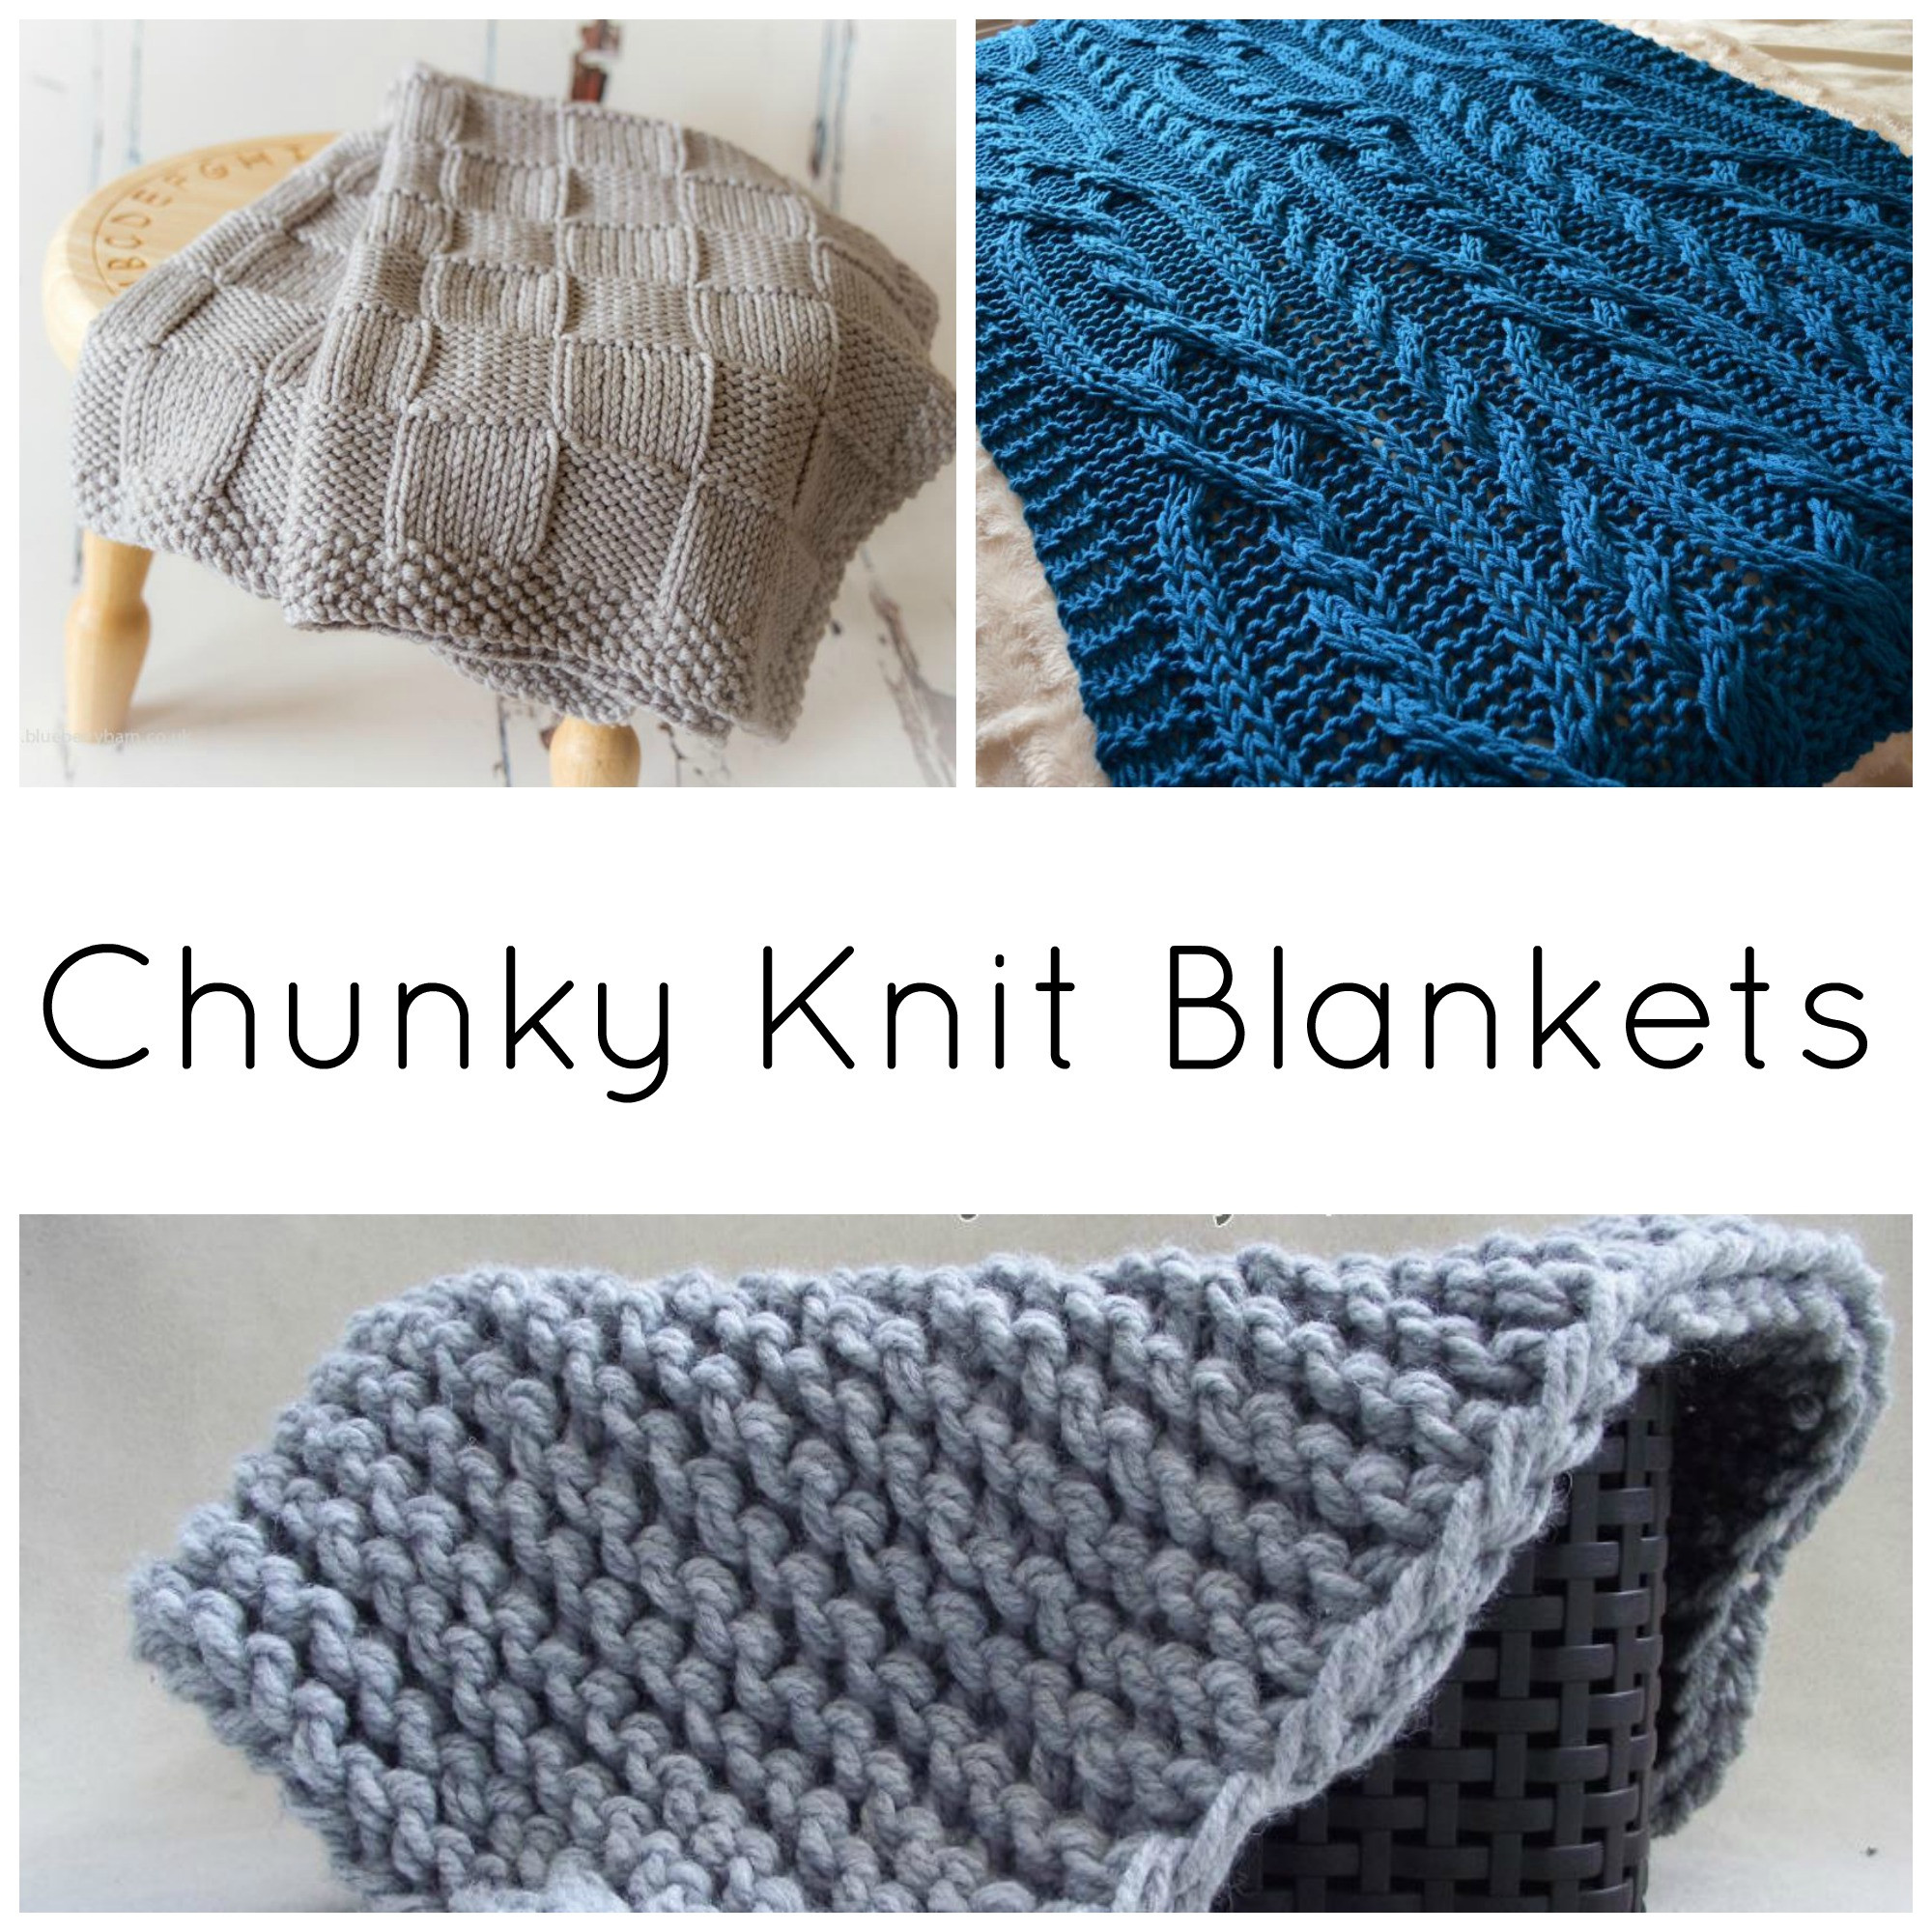 Chunky Yarn Crochet Patterns Beautiful Free Baby Blanket Knitting Patterns Chunky Yarn Crochet Of Amazing 46 Photos Chunky Yarn Crochet Patterns